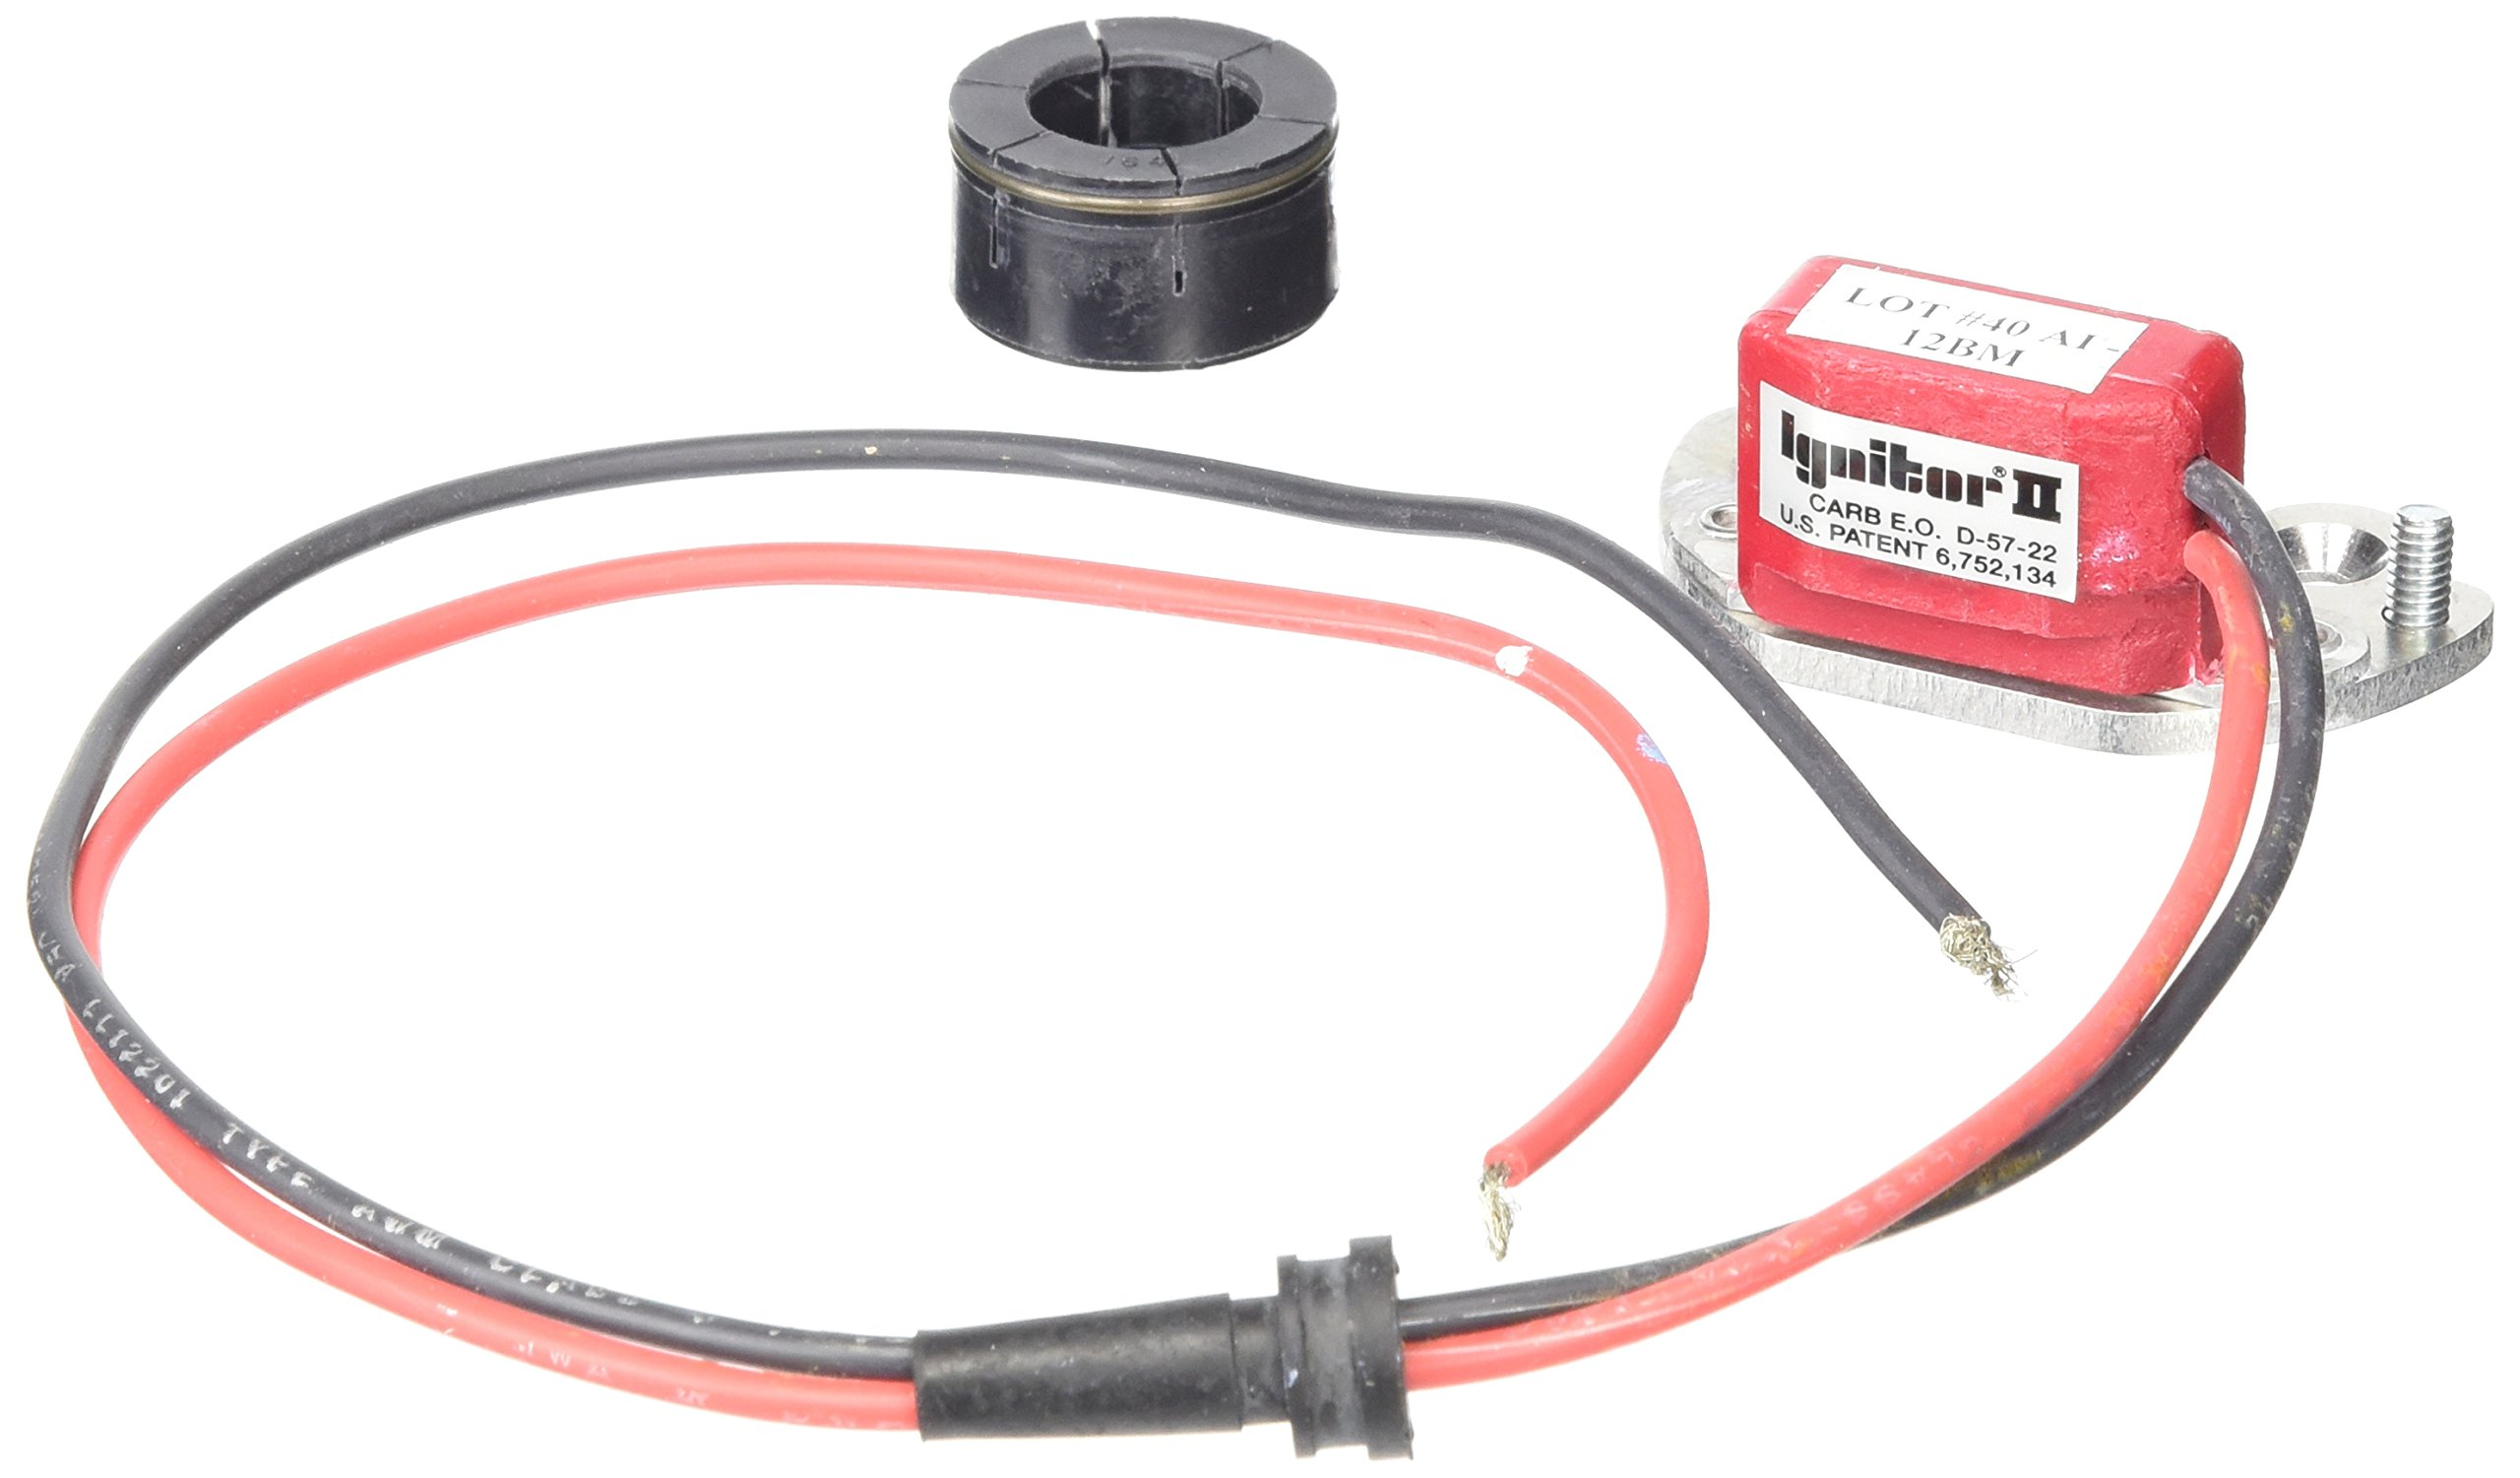 Pertronix 91641 Ignitor II Adaptive Dwell Control for Toyota 4 Cylinder by Pertronix